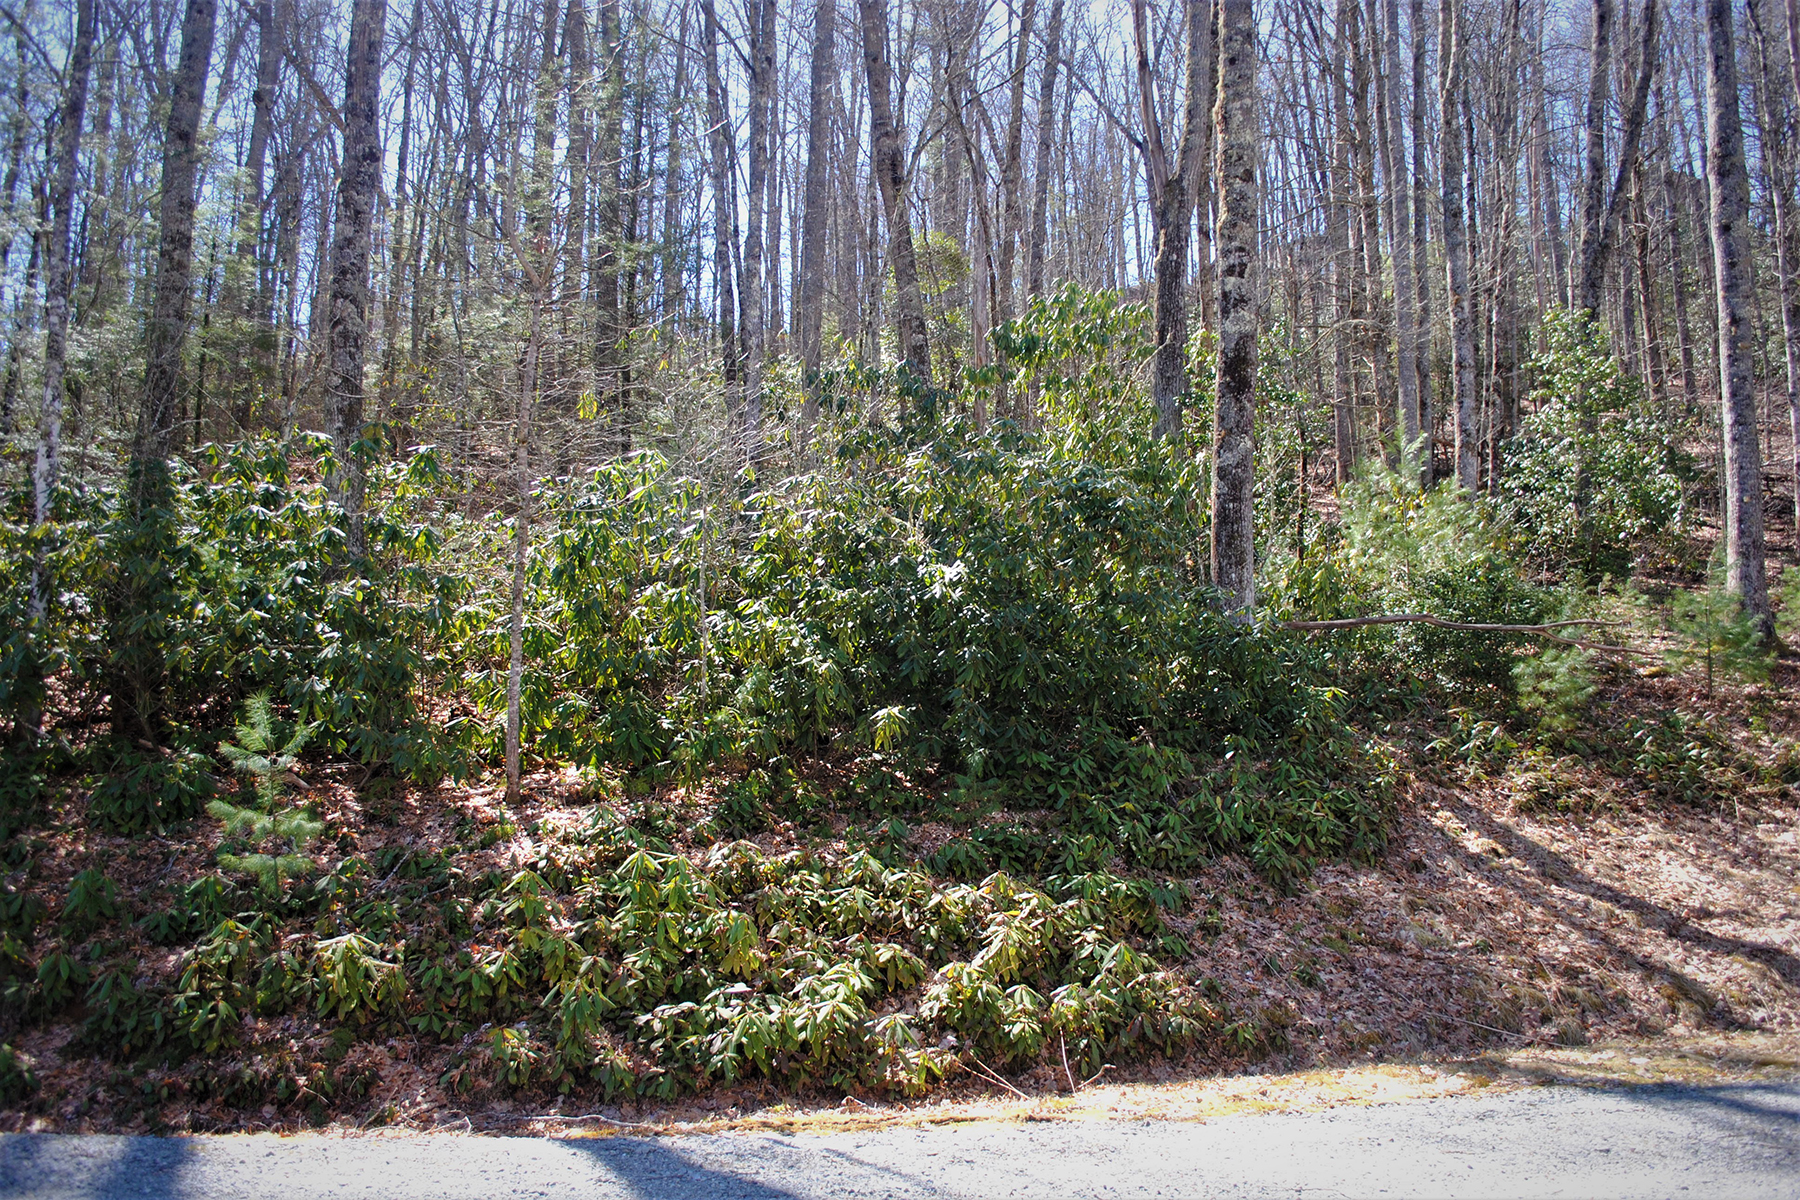 Land for Sale at STONECREST - FLEETWOOD Lot 35 Maple Leaf Rd Fleetwood, North Carolina 28626 United States